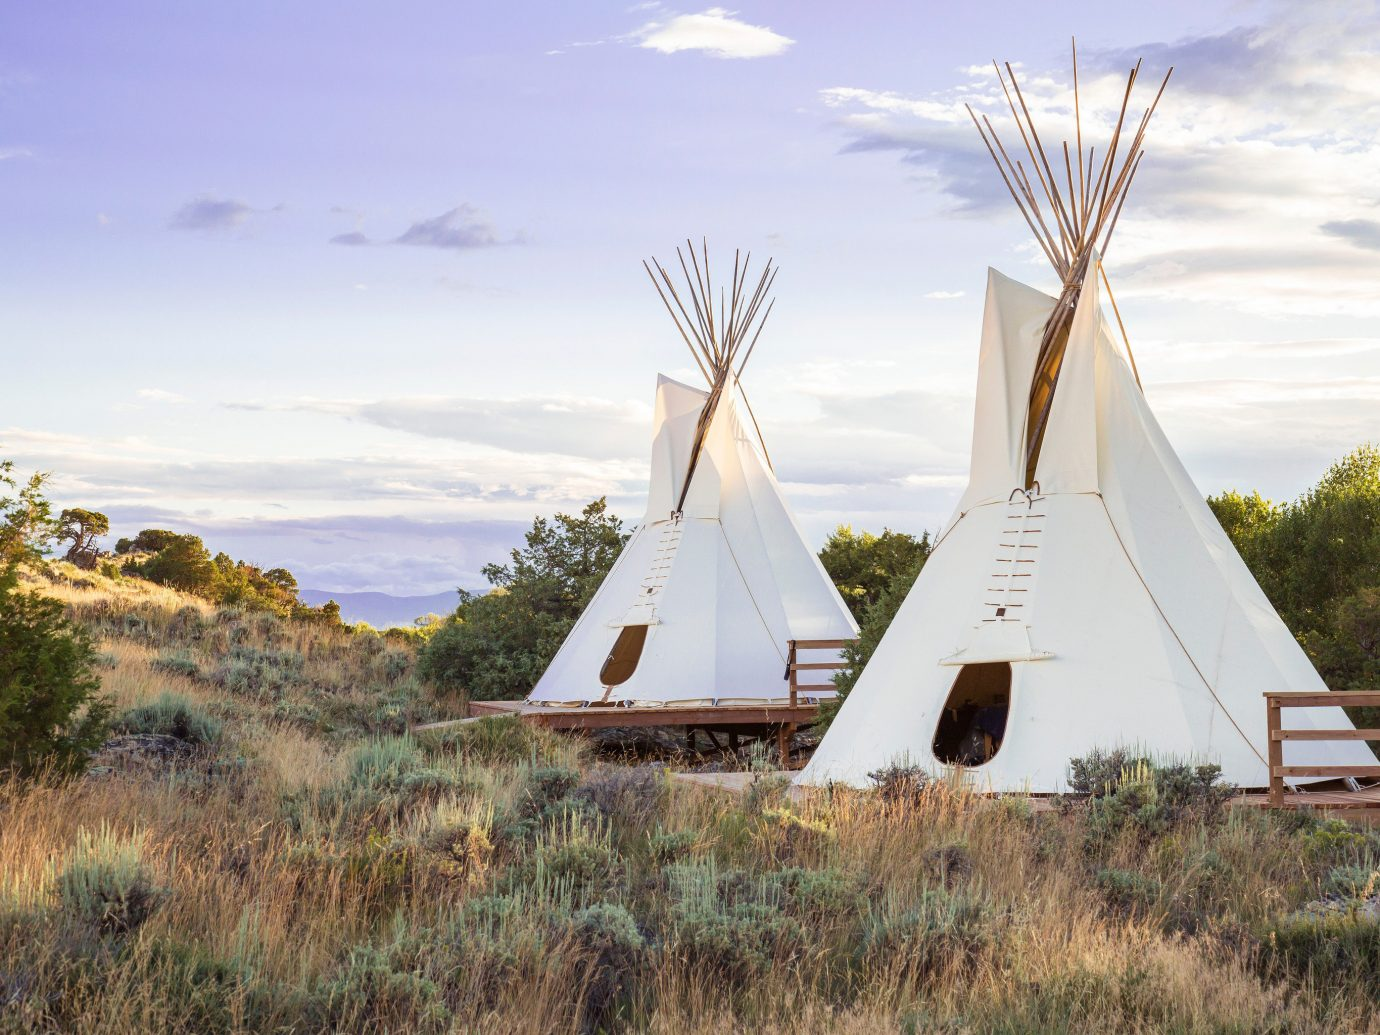 Outdoors + Adventure Trip Ideas tepee building grass outdoor sky windmill landmark field rural area mill tower monument wind